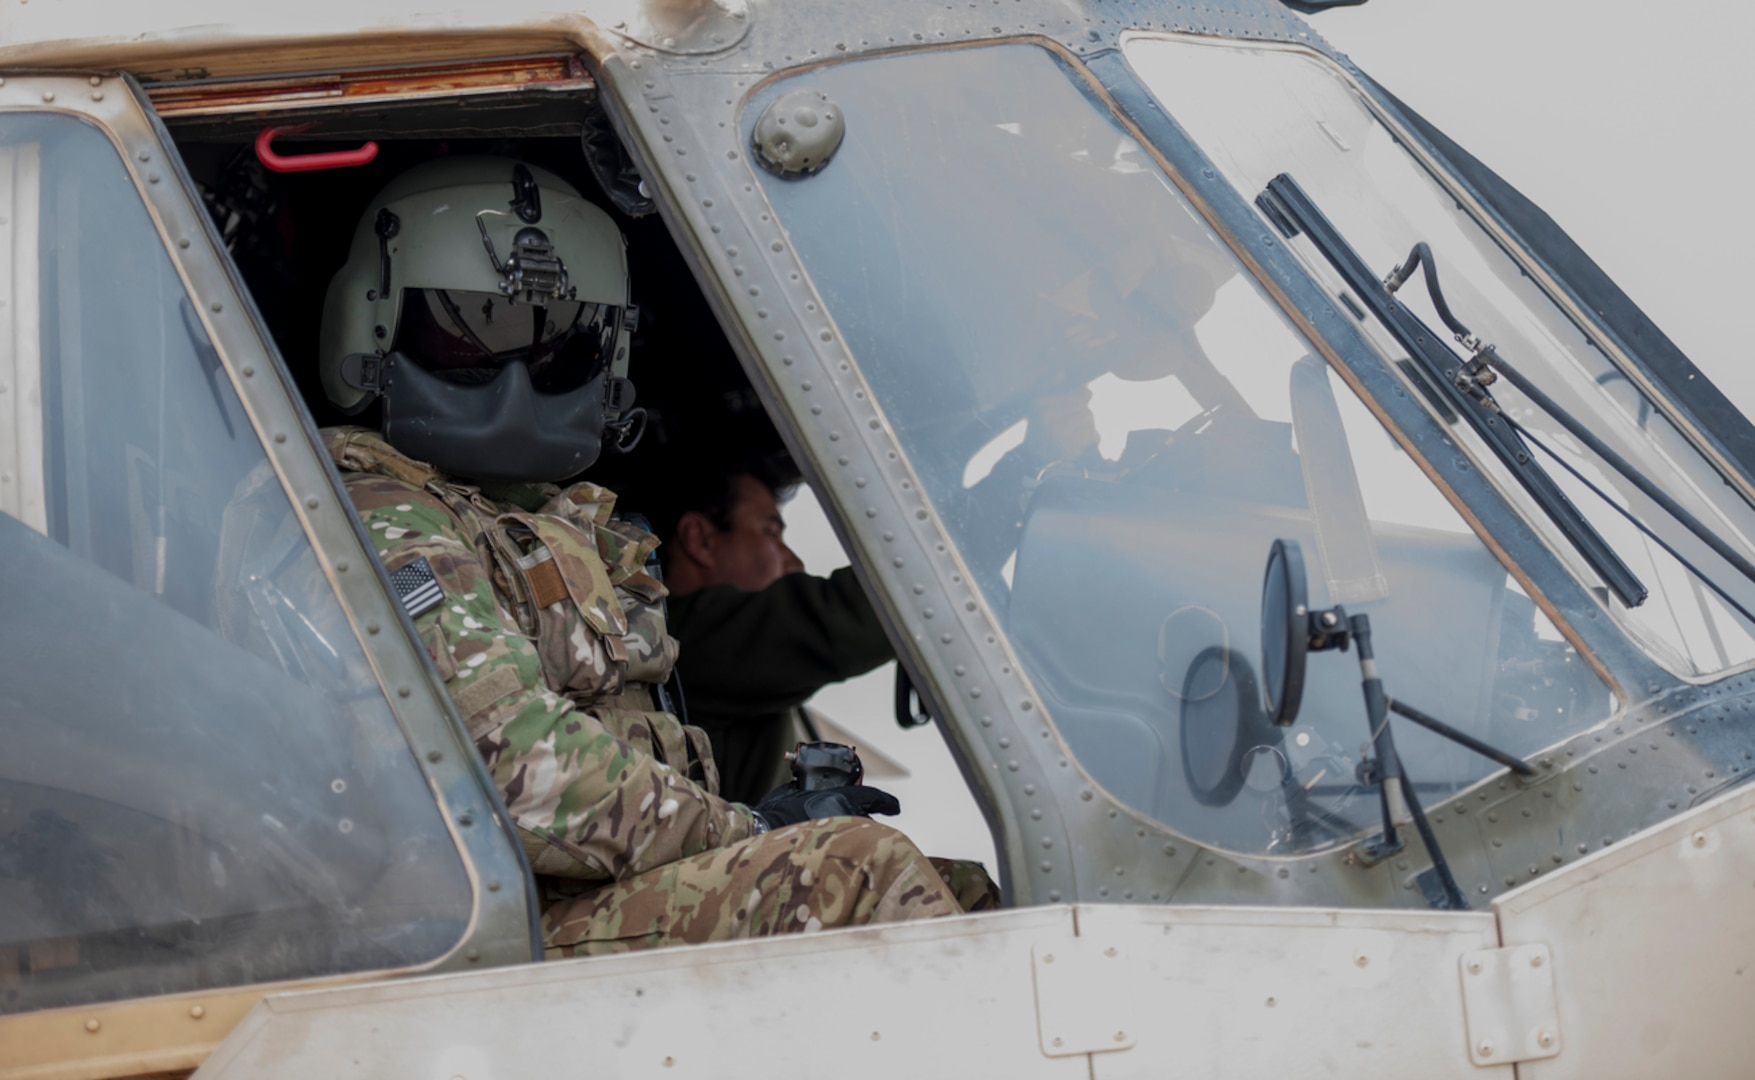 An Afghan Air Force pilot powers down an Mi-17 helicopter as a Train Advise Assist Command-Air Mi-17 Air Advisor looks out a cockpit window after a training mission at Kandahar Airfield, Afghanistan, earlier this ye. Members of the 441st Air Expeditionary Advisory Squadron at KAF worked with AAF pilots on take-off, landing and emergency procedures. (U.S. Air Force Photo by Tech. Sgt. Robert Cloys)